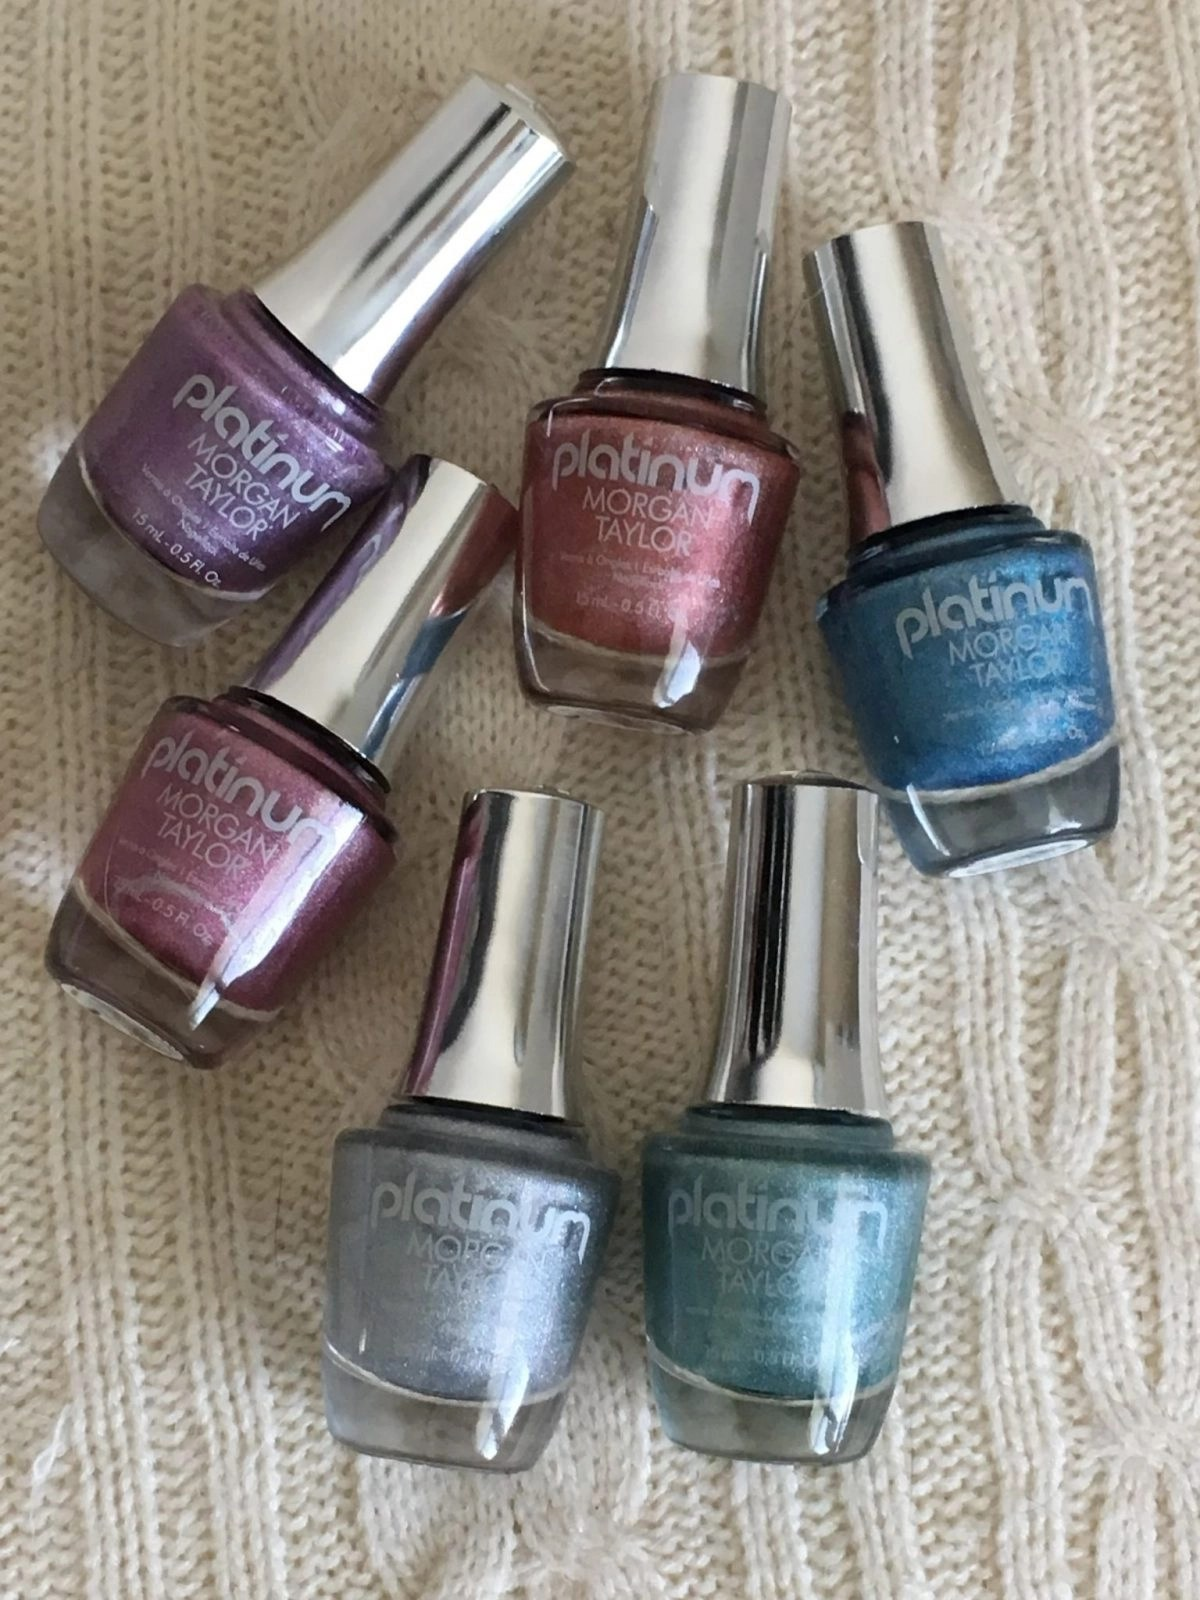 Morgan Taylor Platinum Nail Polishes Main Image